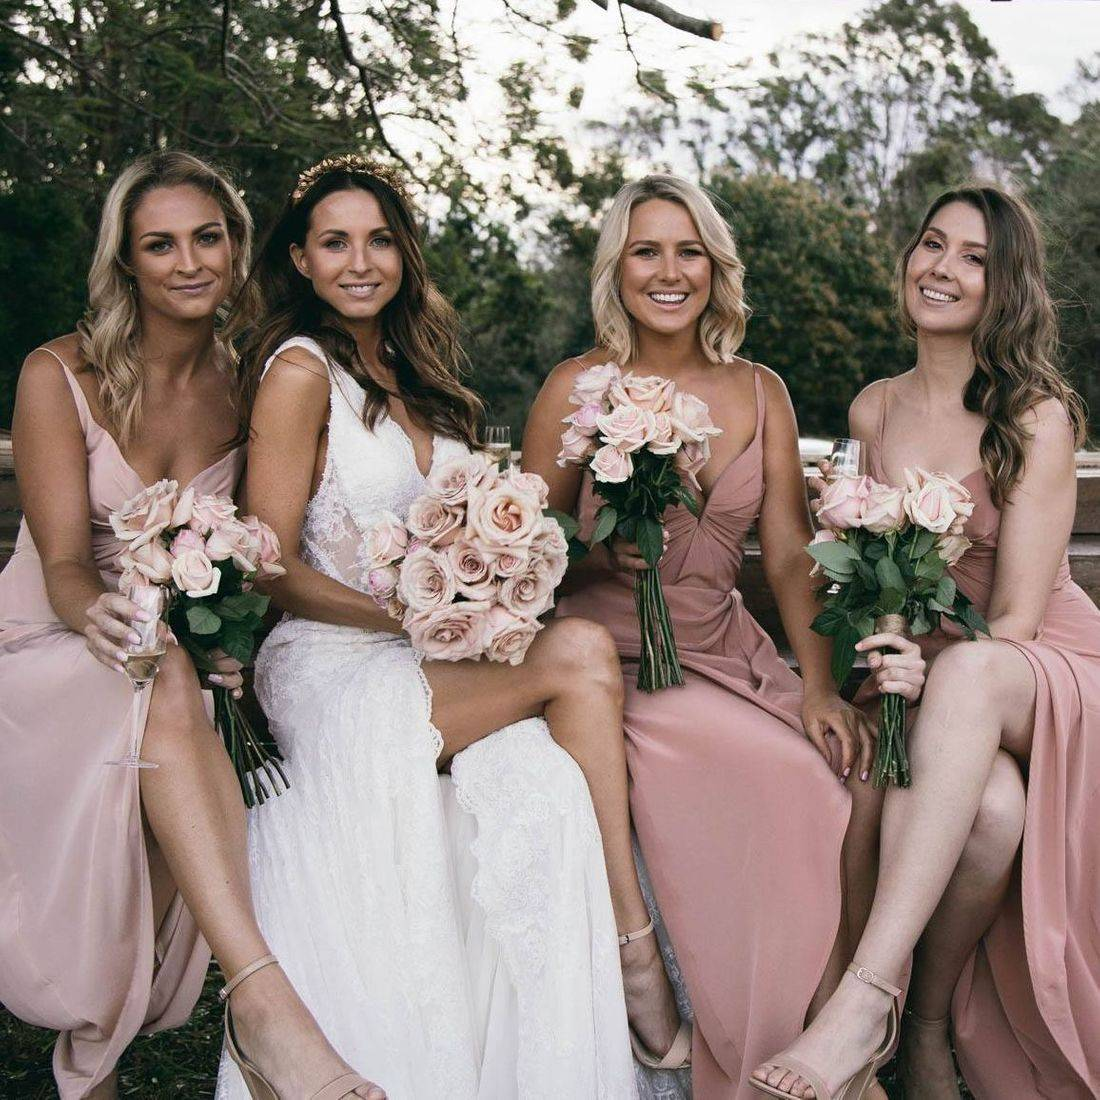 Kate and her bridal party